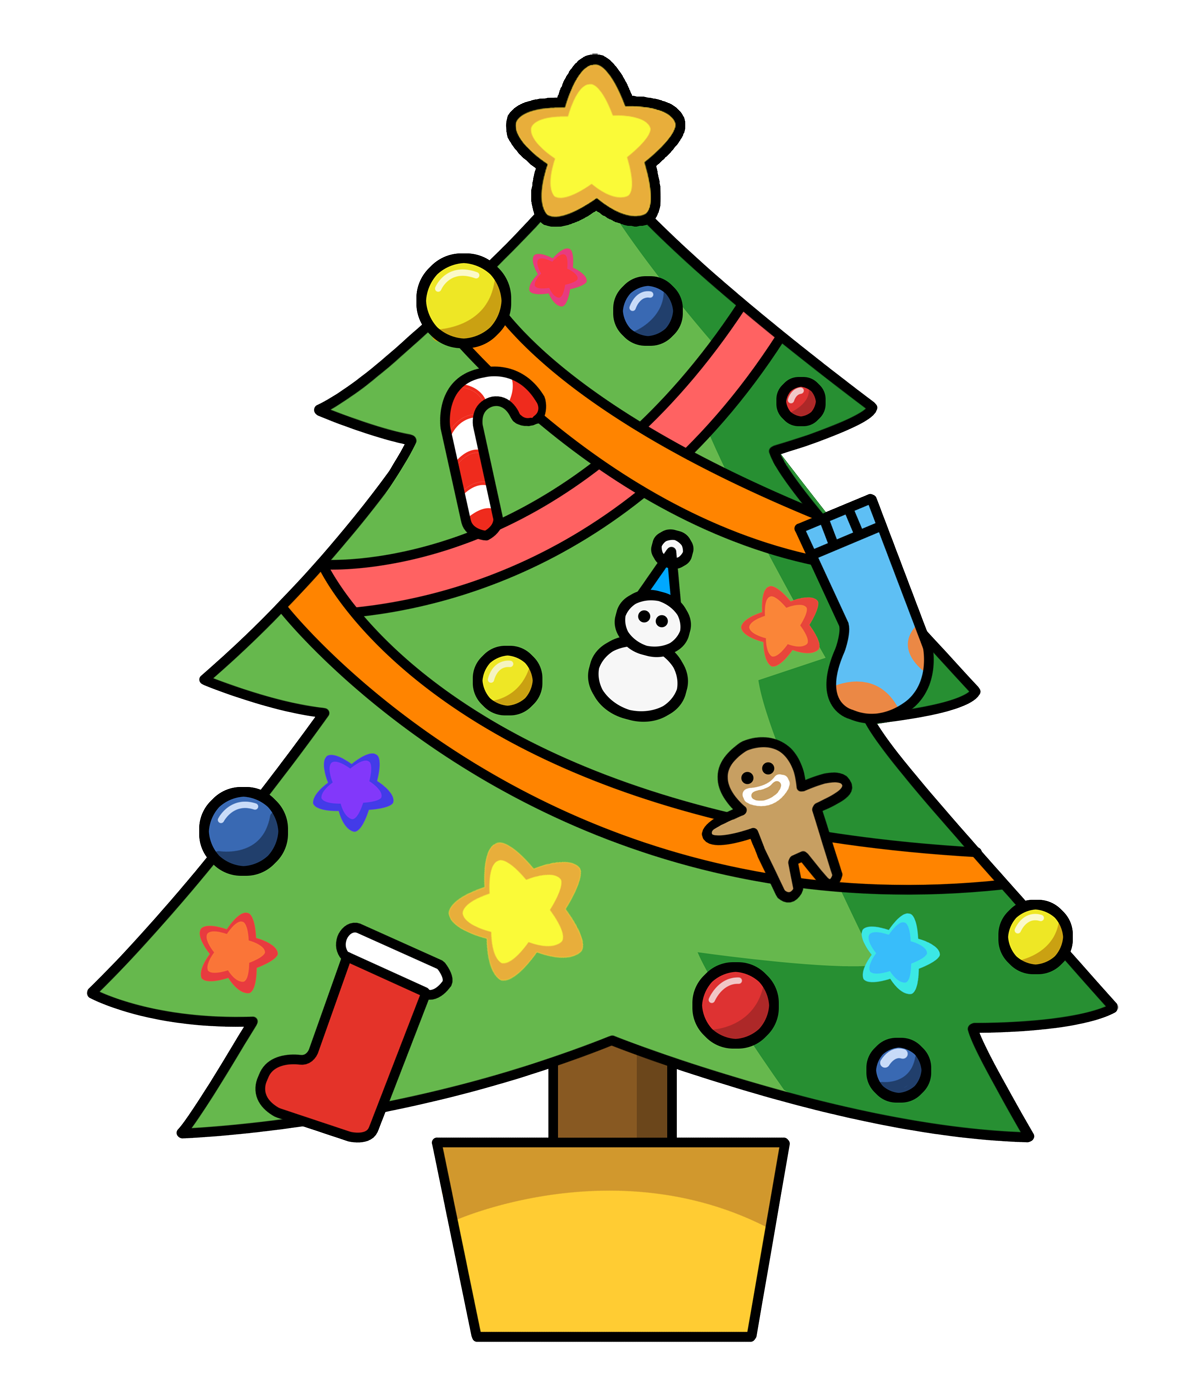 Christmas tree shop clipart clipart royalty free library christmas tree shop clipart - Clipground clipart royalty free library